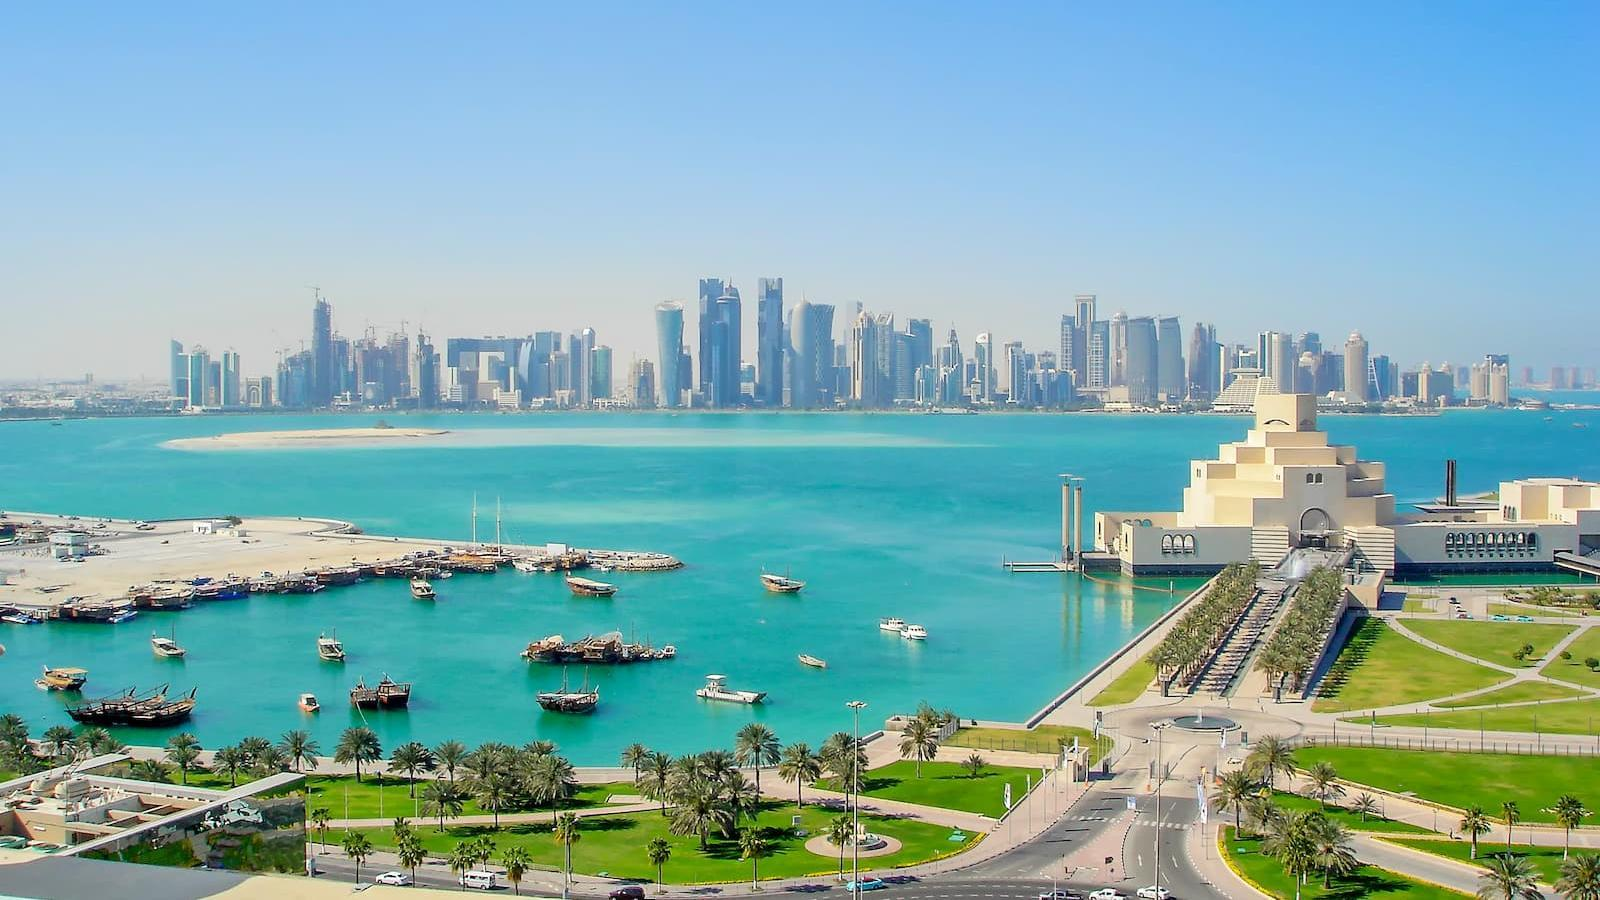 Qatar is committed to assisting the least developed countries: HE Lolwah Al Khater